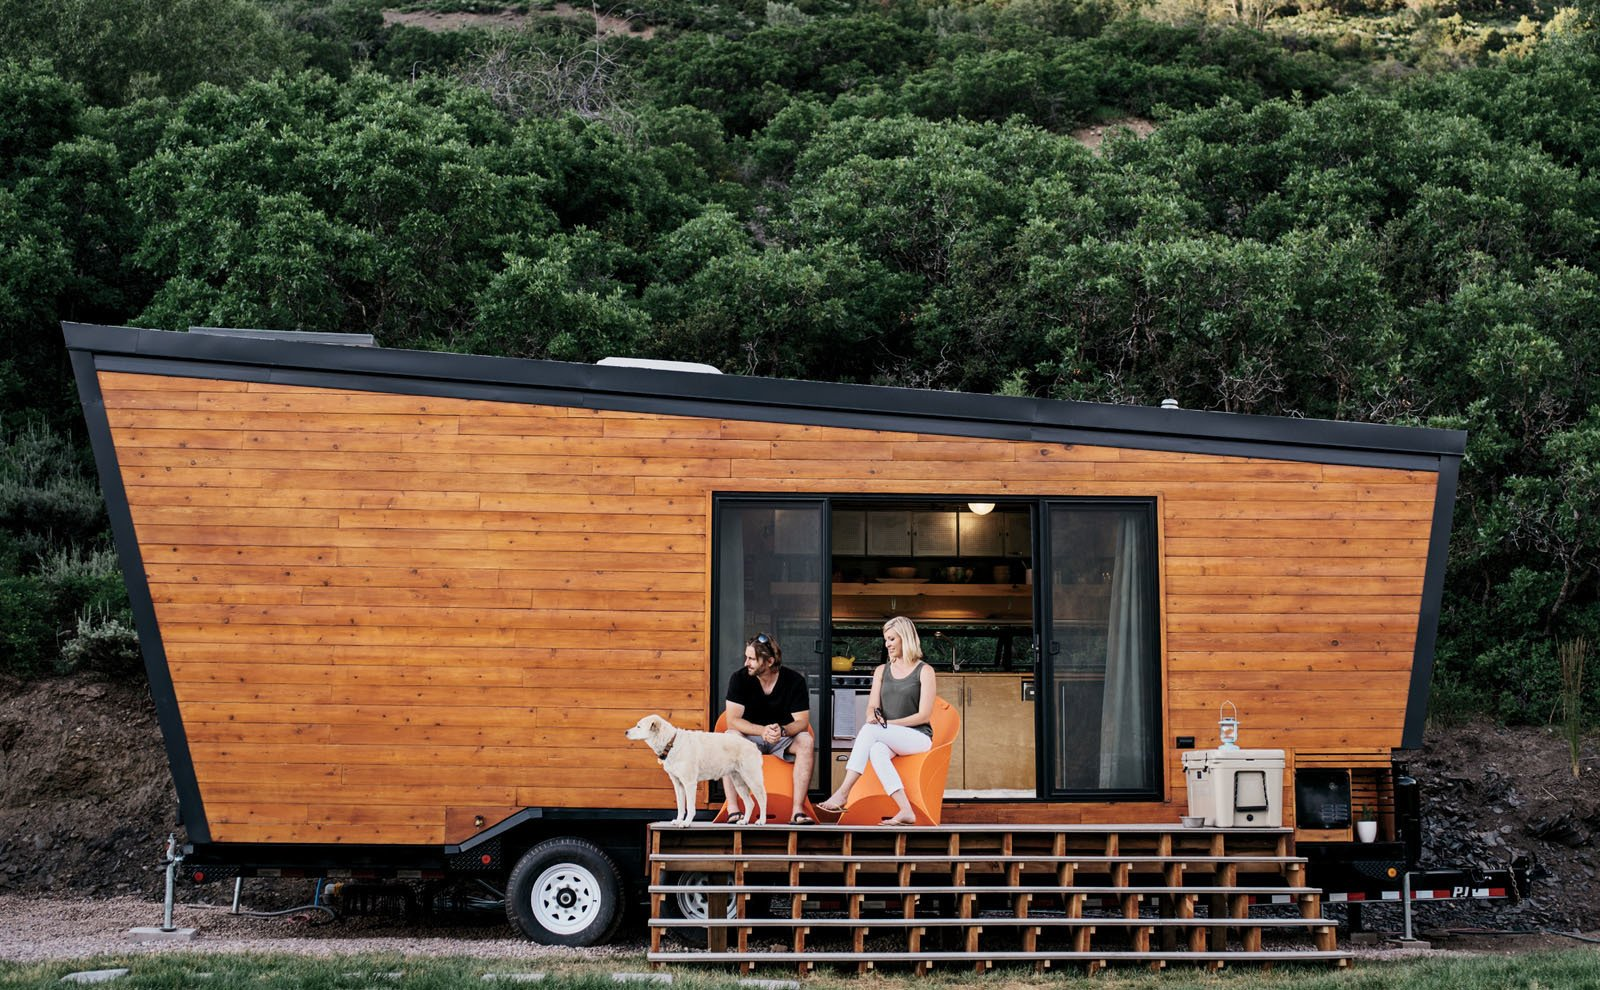 How to build a tiny diy trailer on a budget dwell for How to build a custom home on a budget